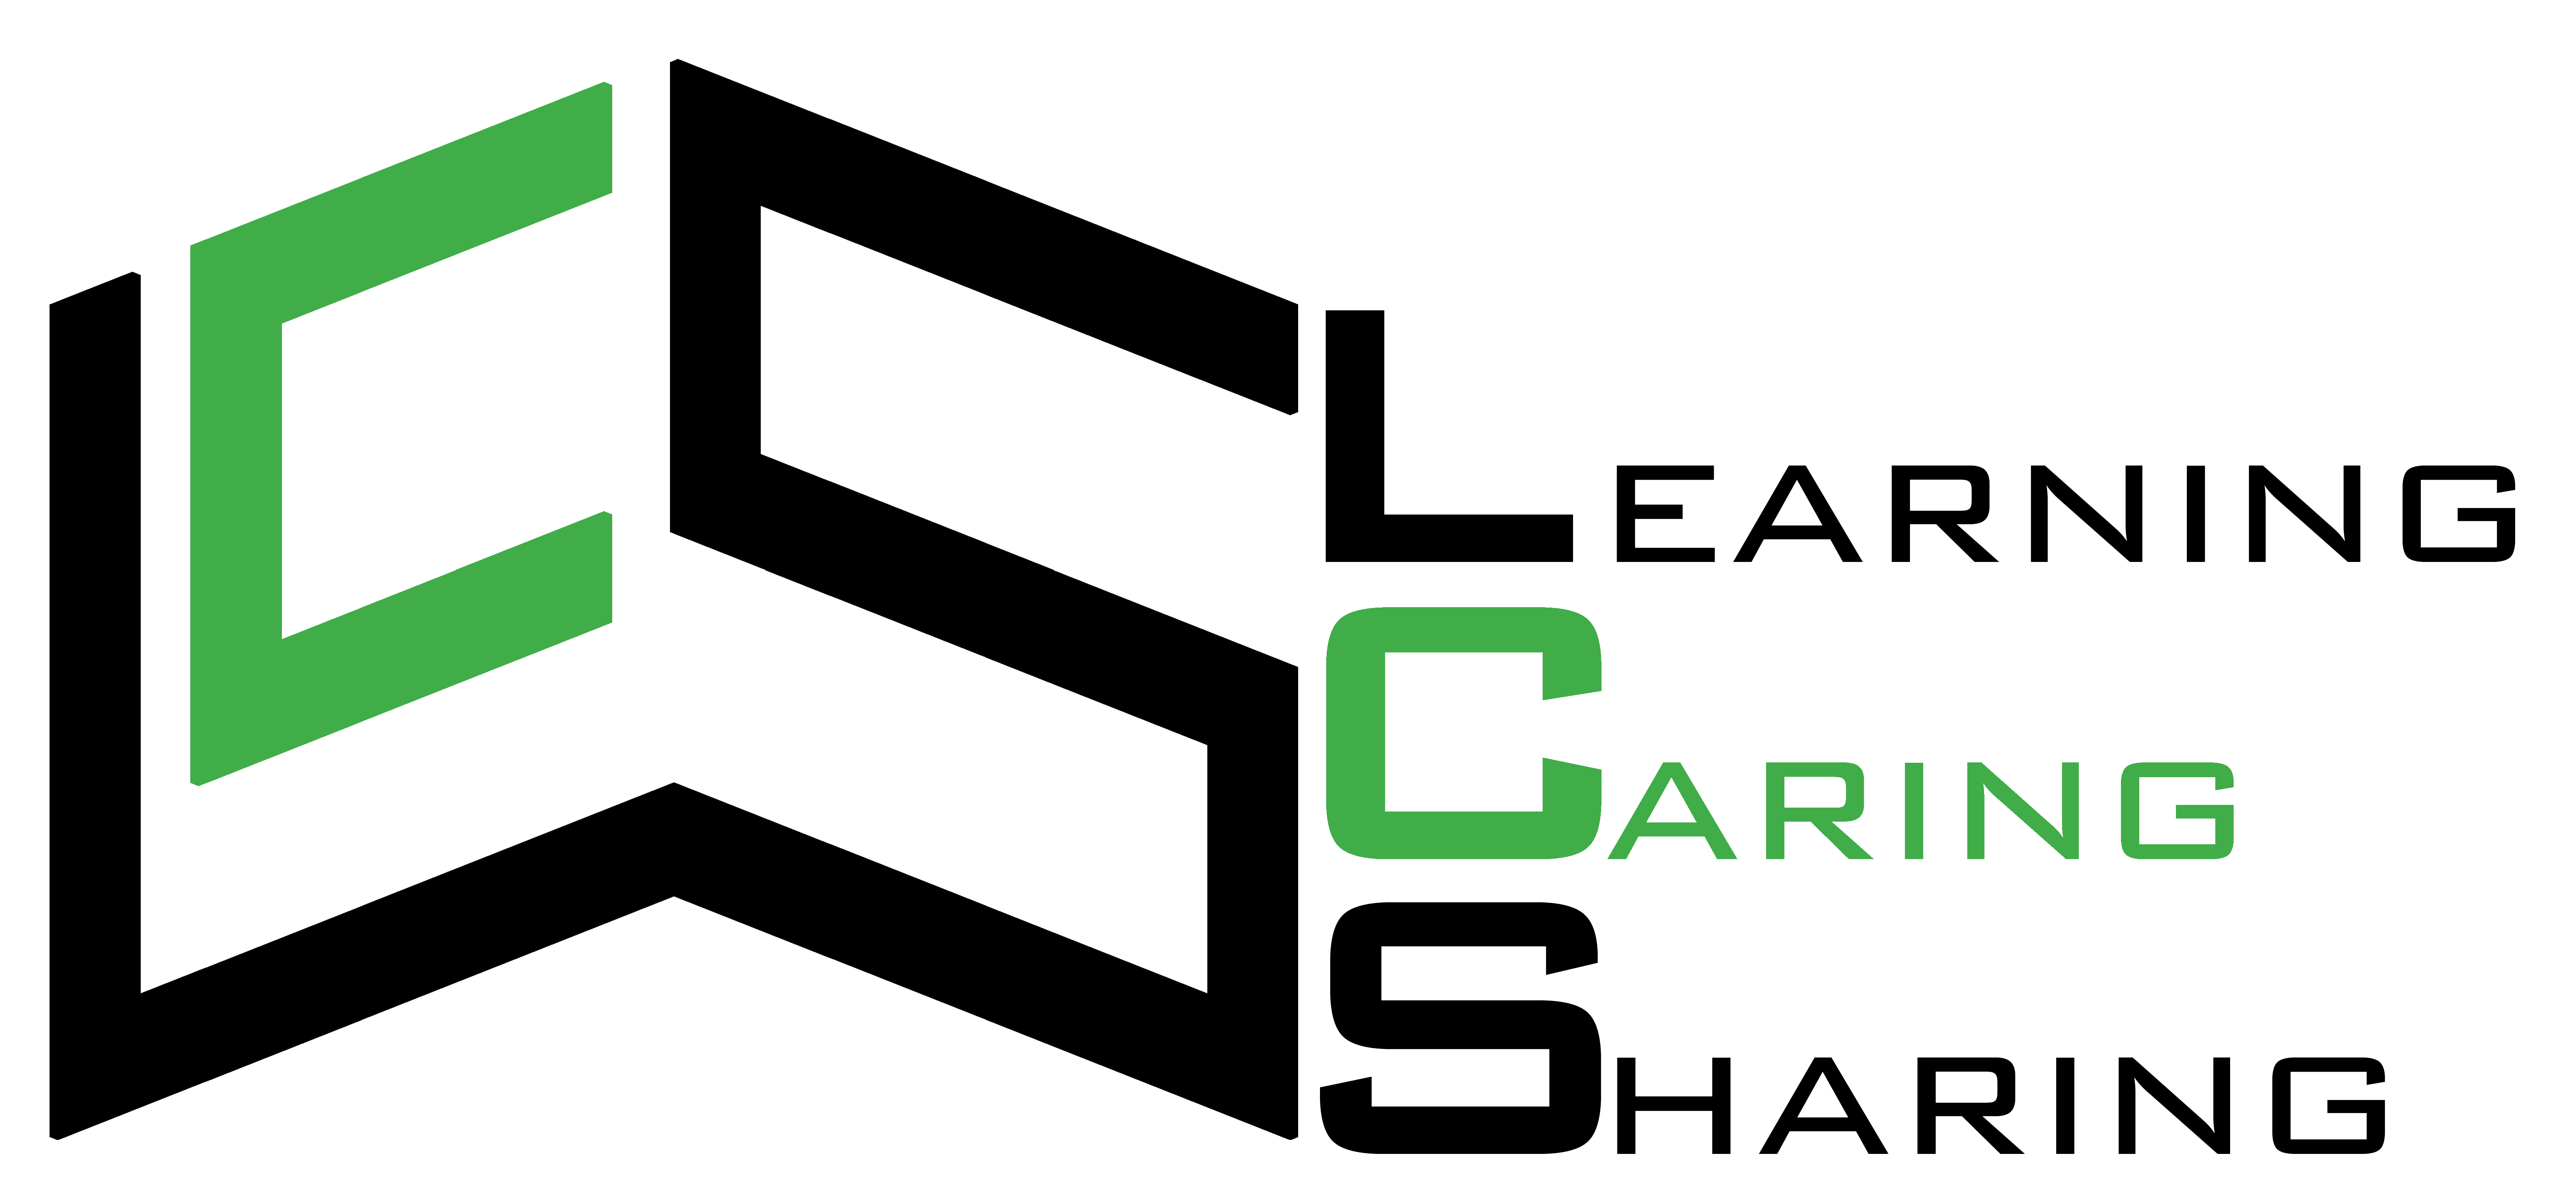 Learning Caring Sharing event logo